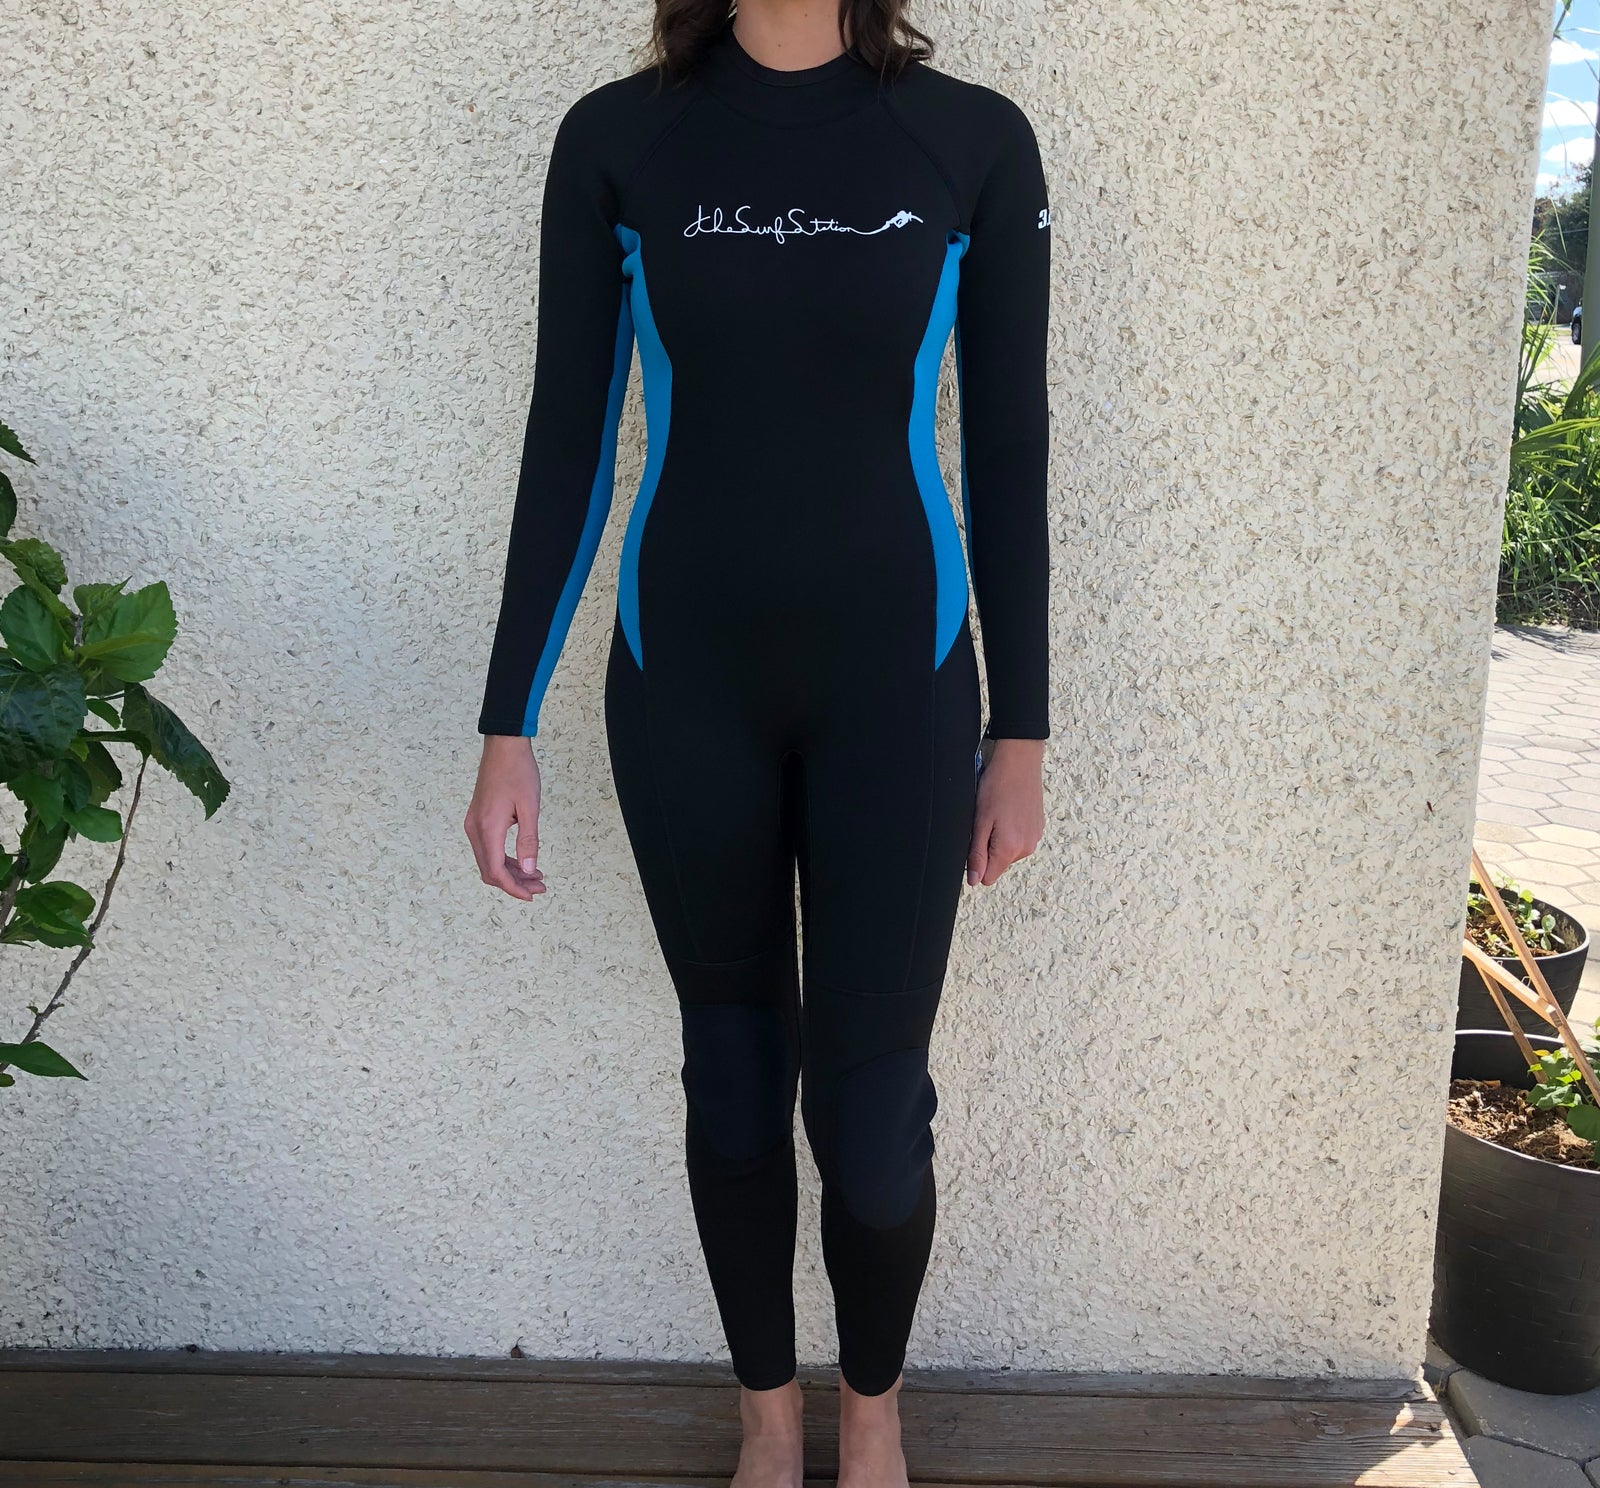 Surf Station Gas Pump 3 2 Women s Fullsuit Wetsuit - Surf Station Store 679bd1aa5